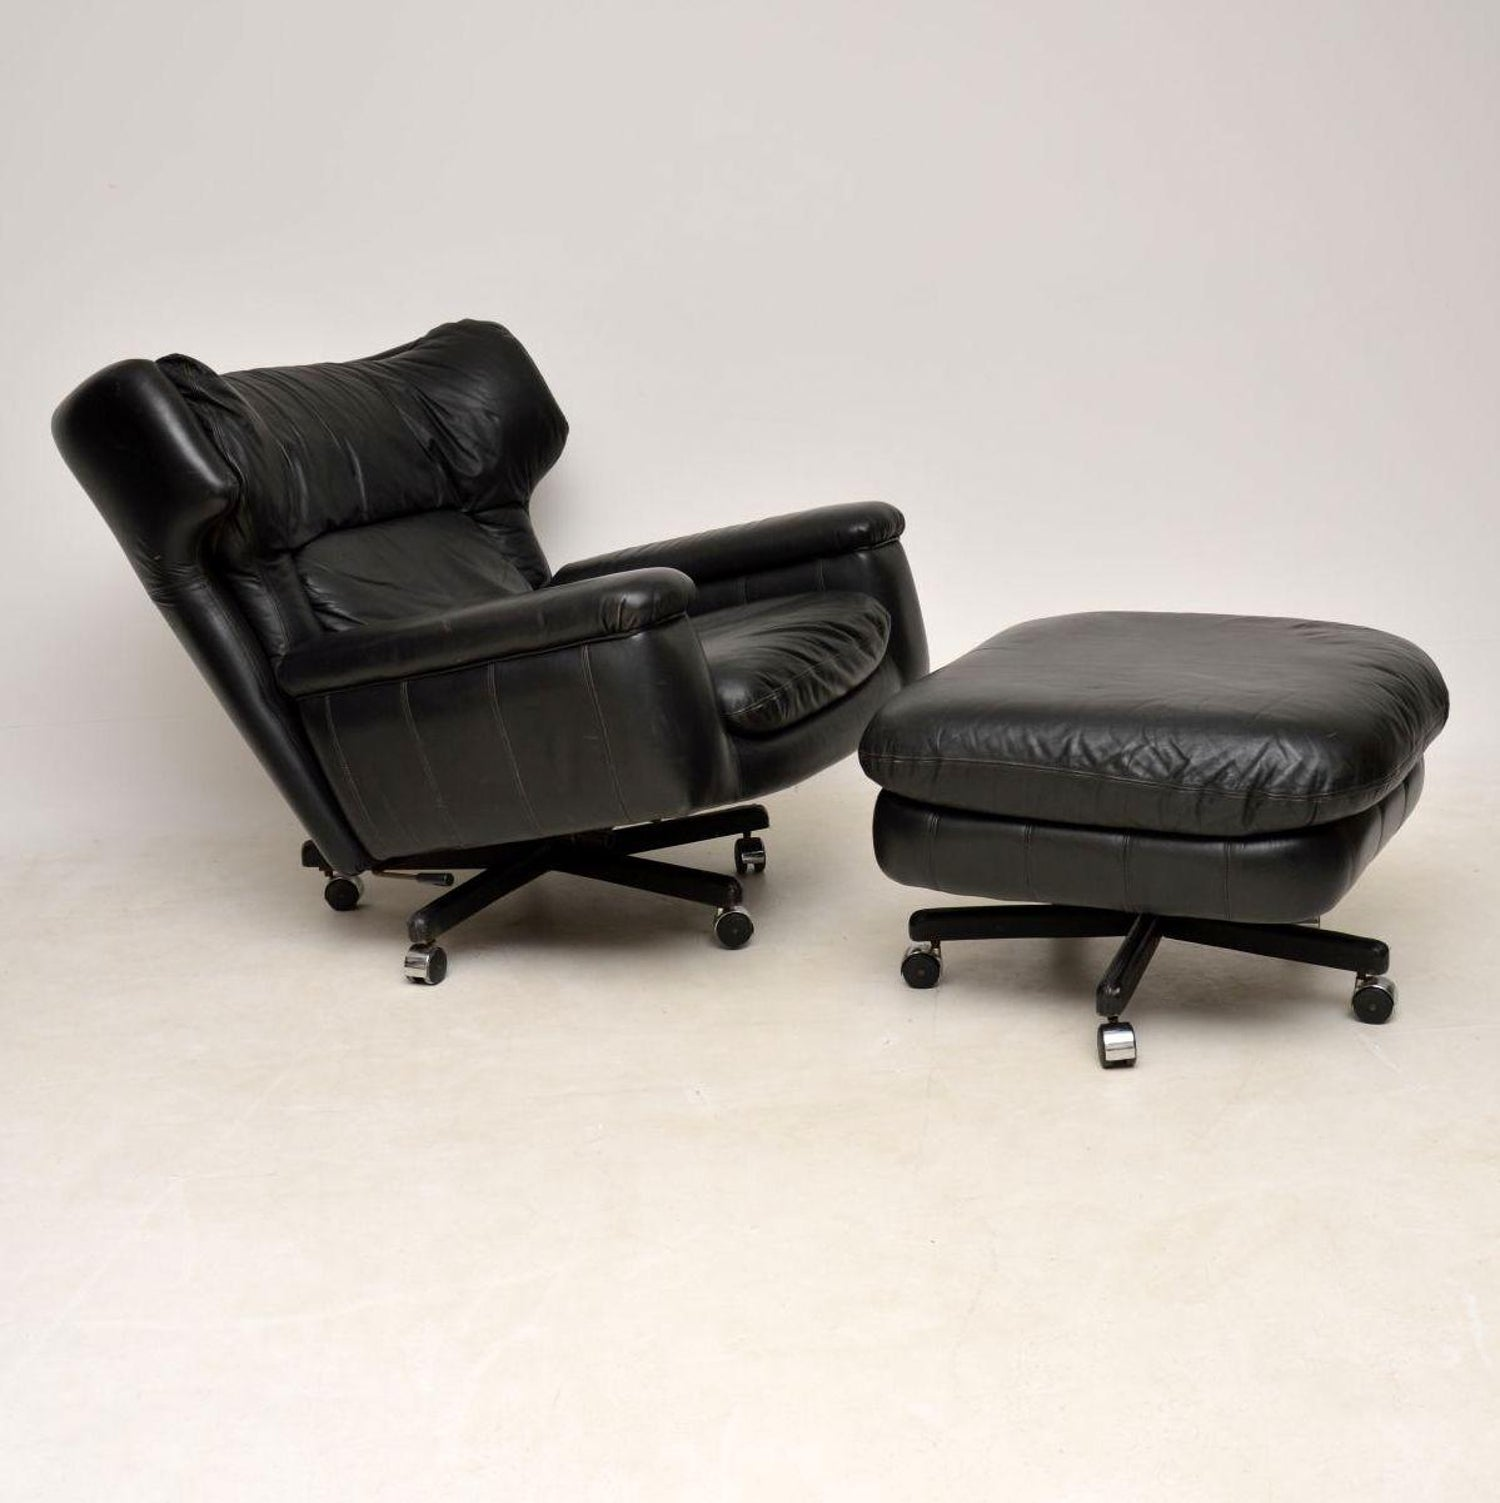 1960s Vintage Leather Reclining Armchair And Stool For Sale At 1stdibs